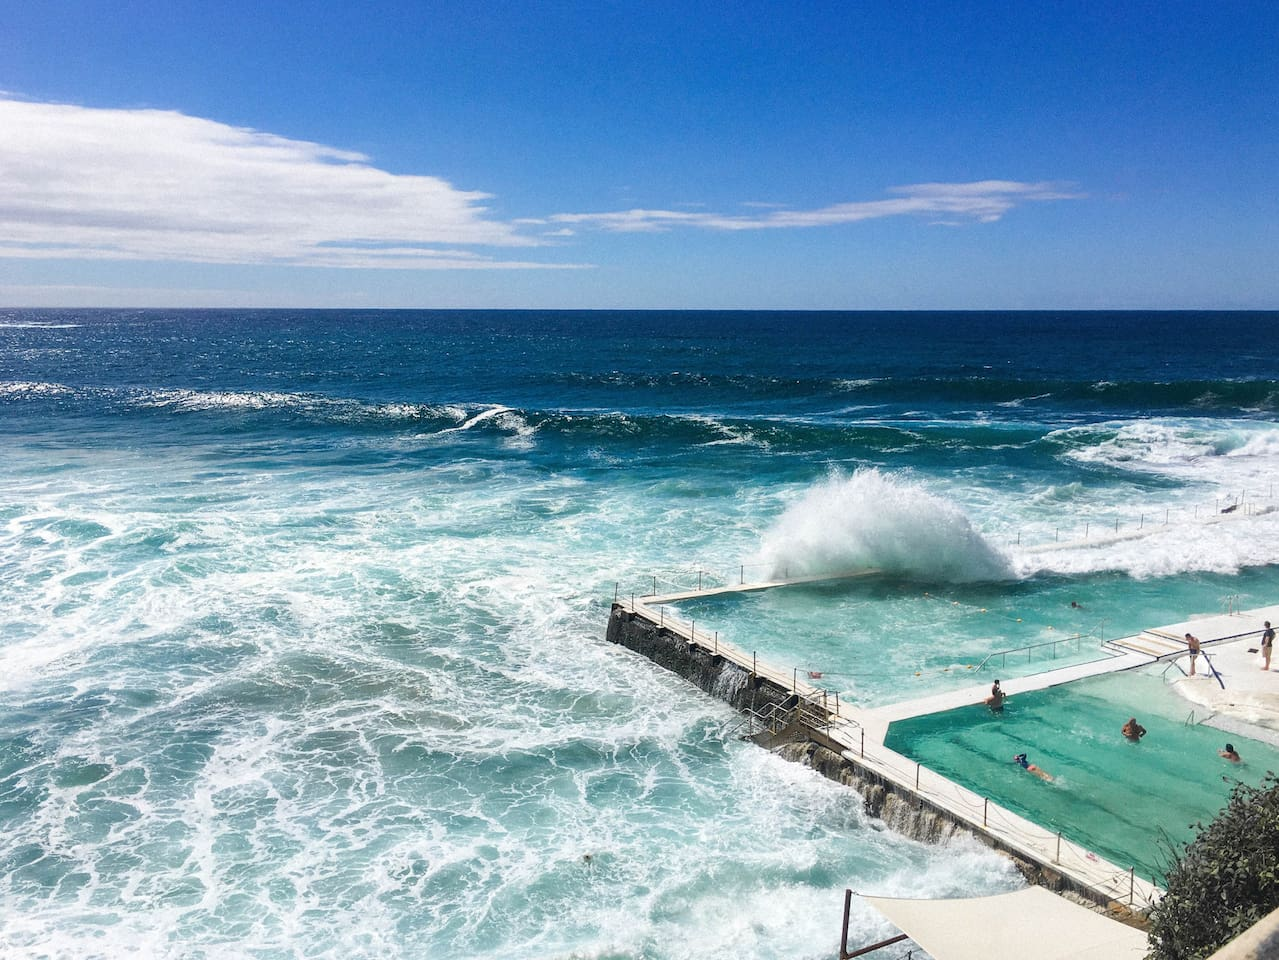 This is the ocean pool south end of Bondi Beach below Iceberg, 2 mins walk from apartment.